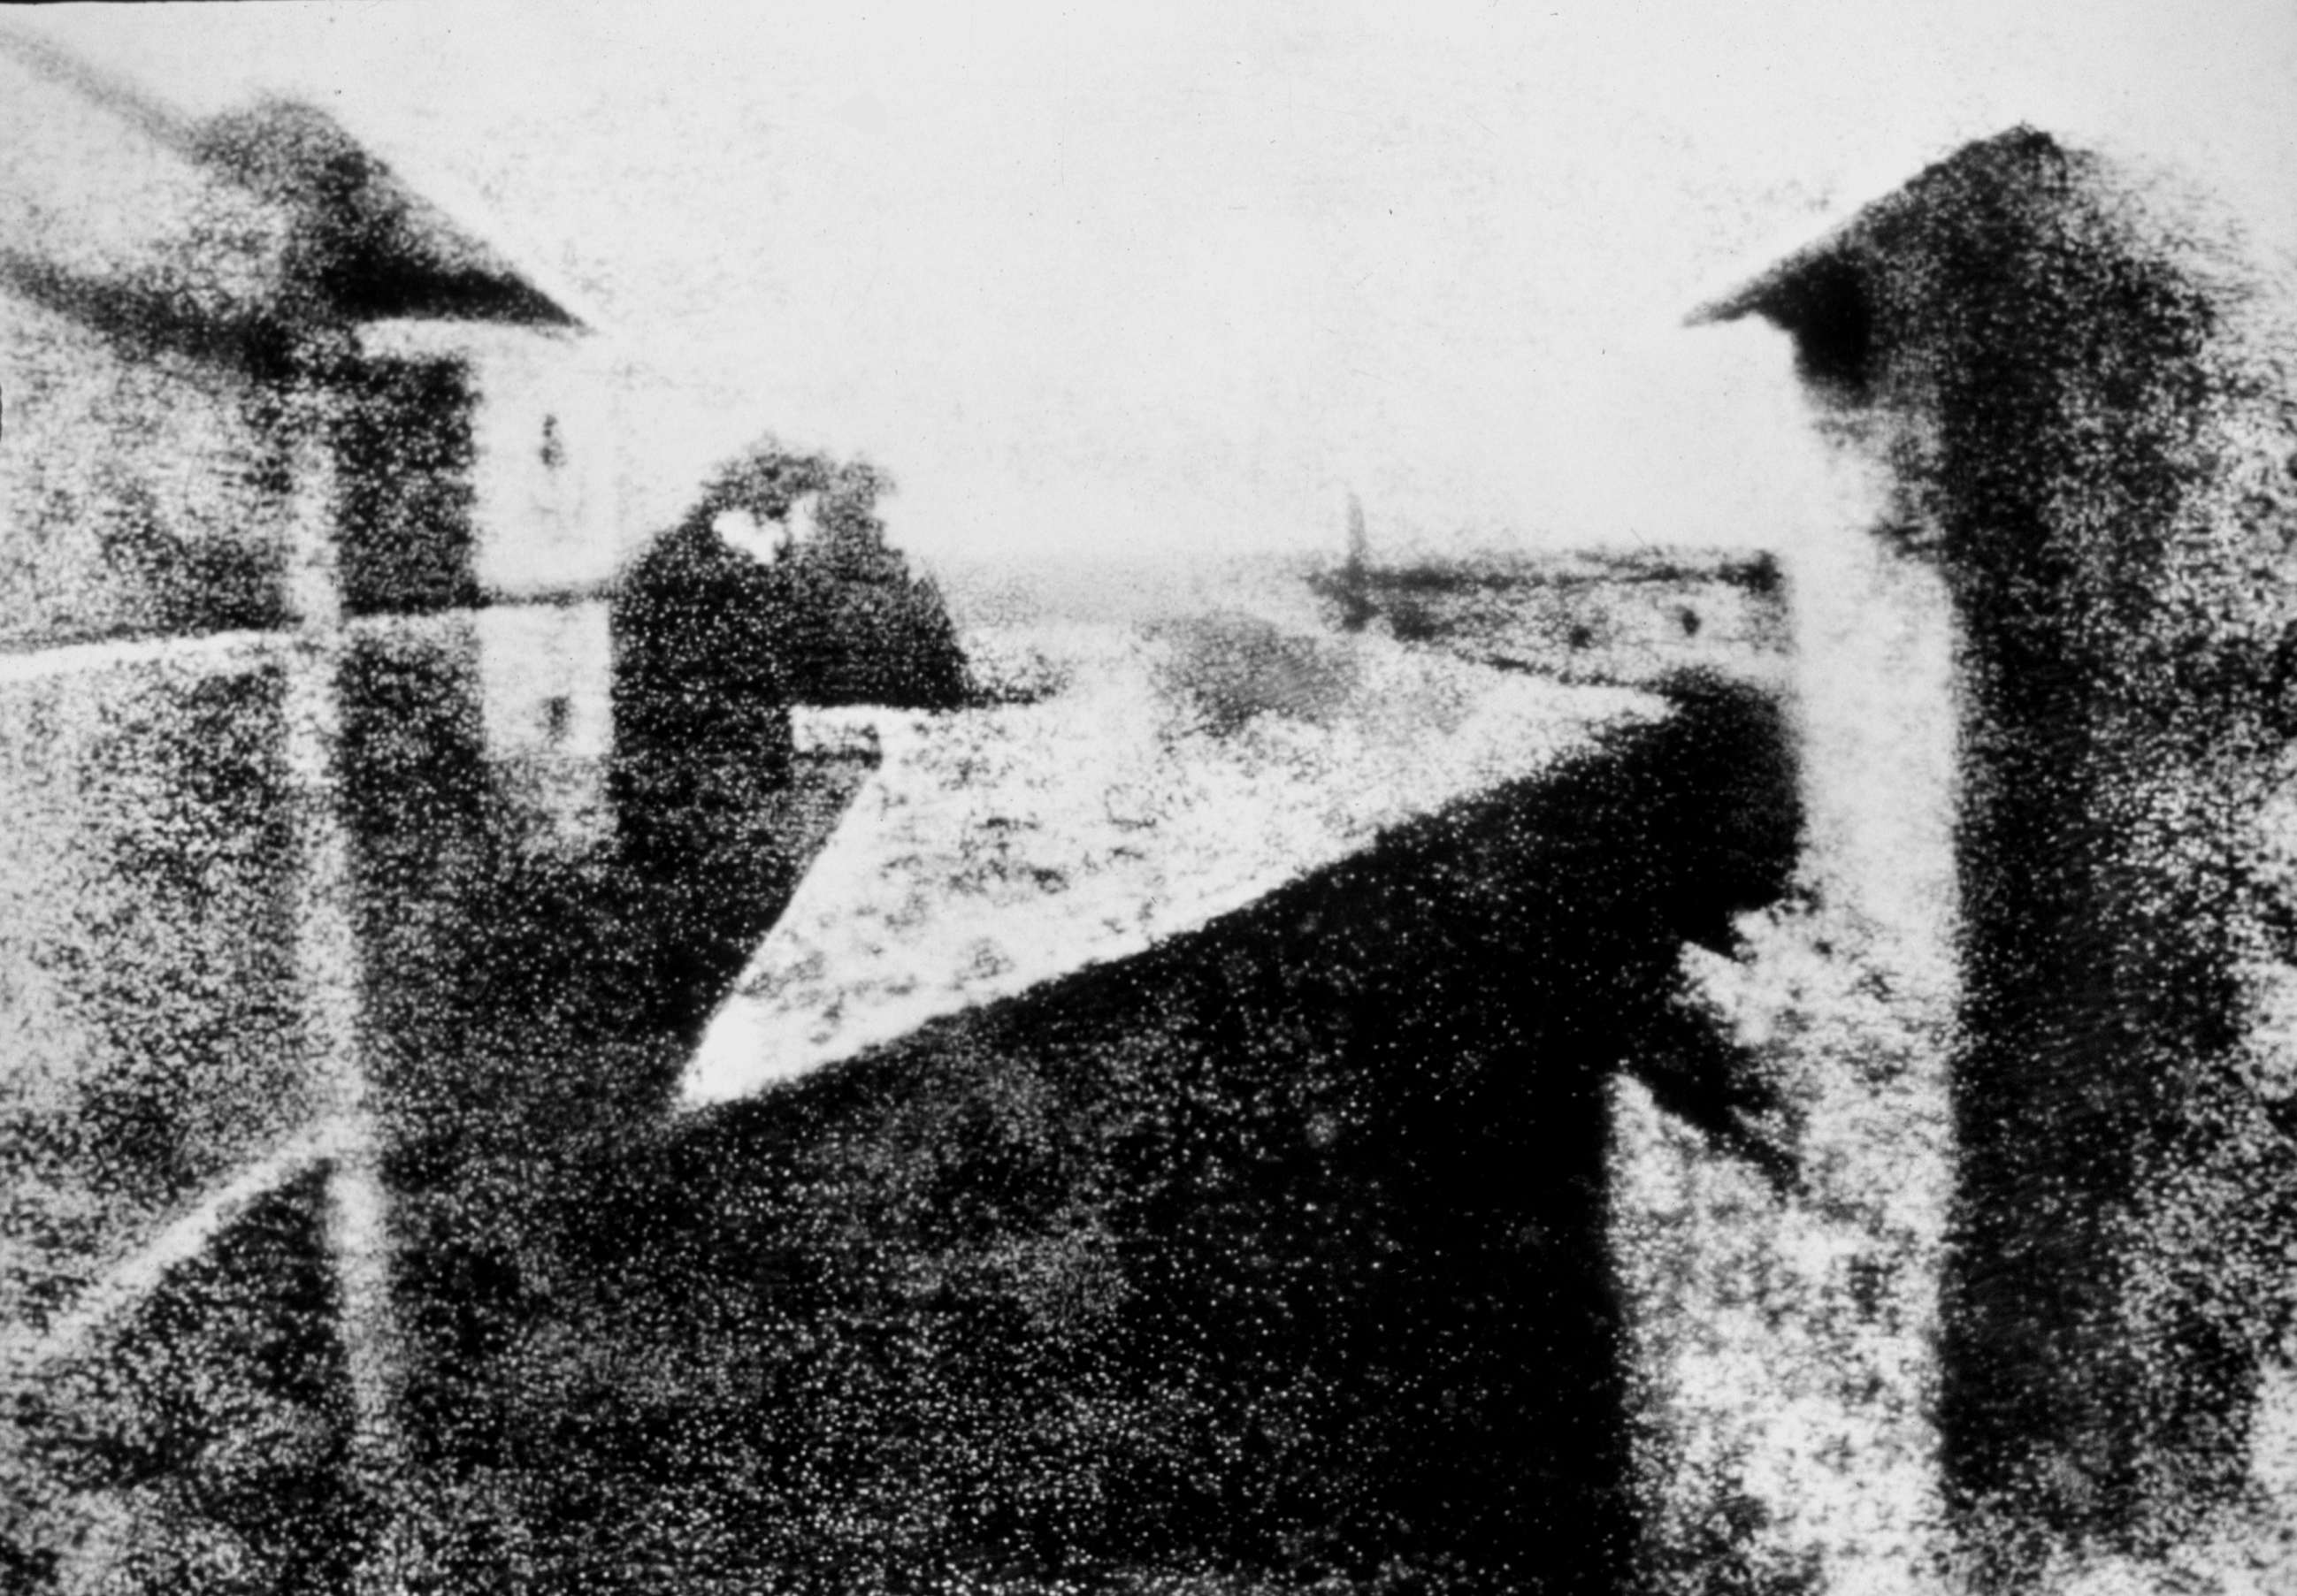 photography view from the window at le gras 1826 or 1827 the earliest surviving camera photograph